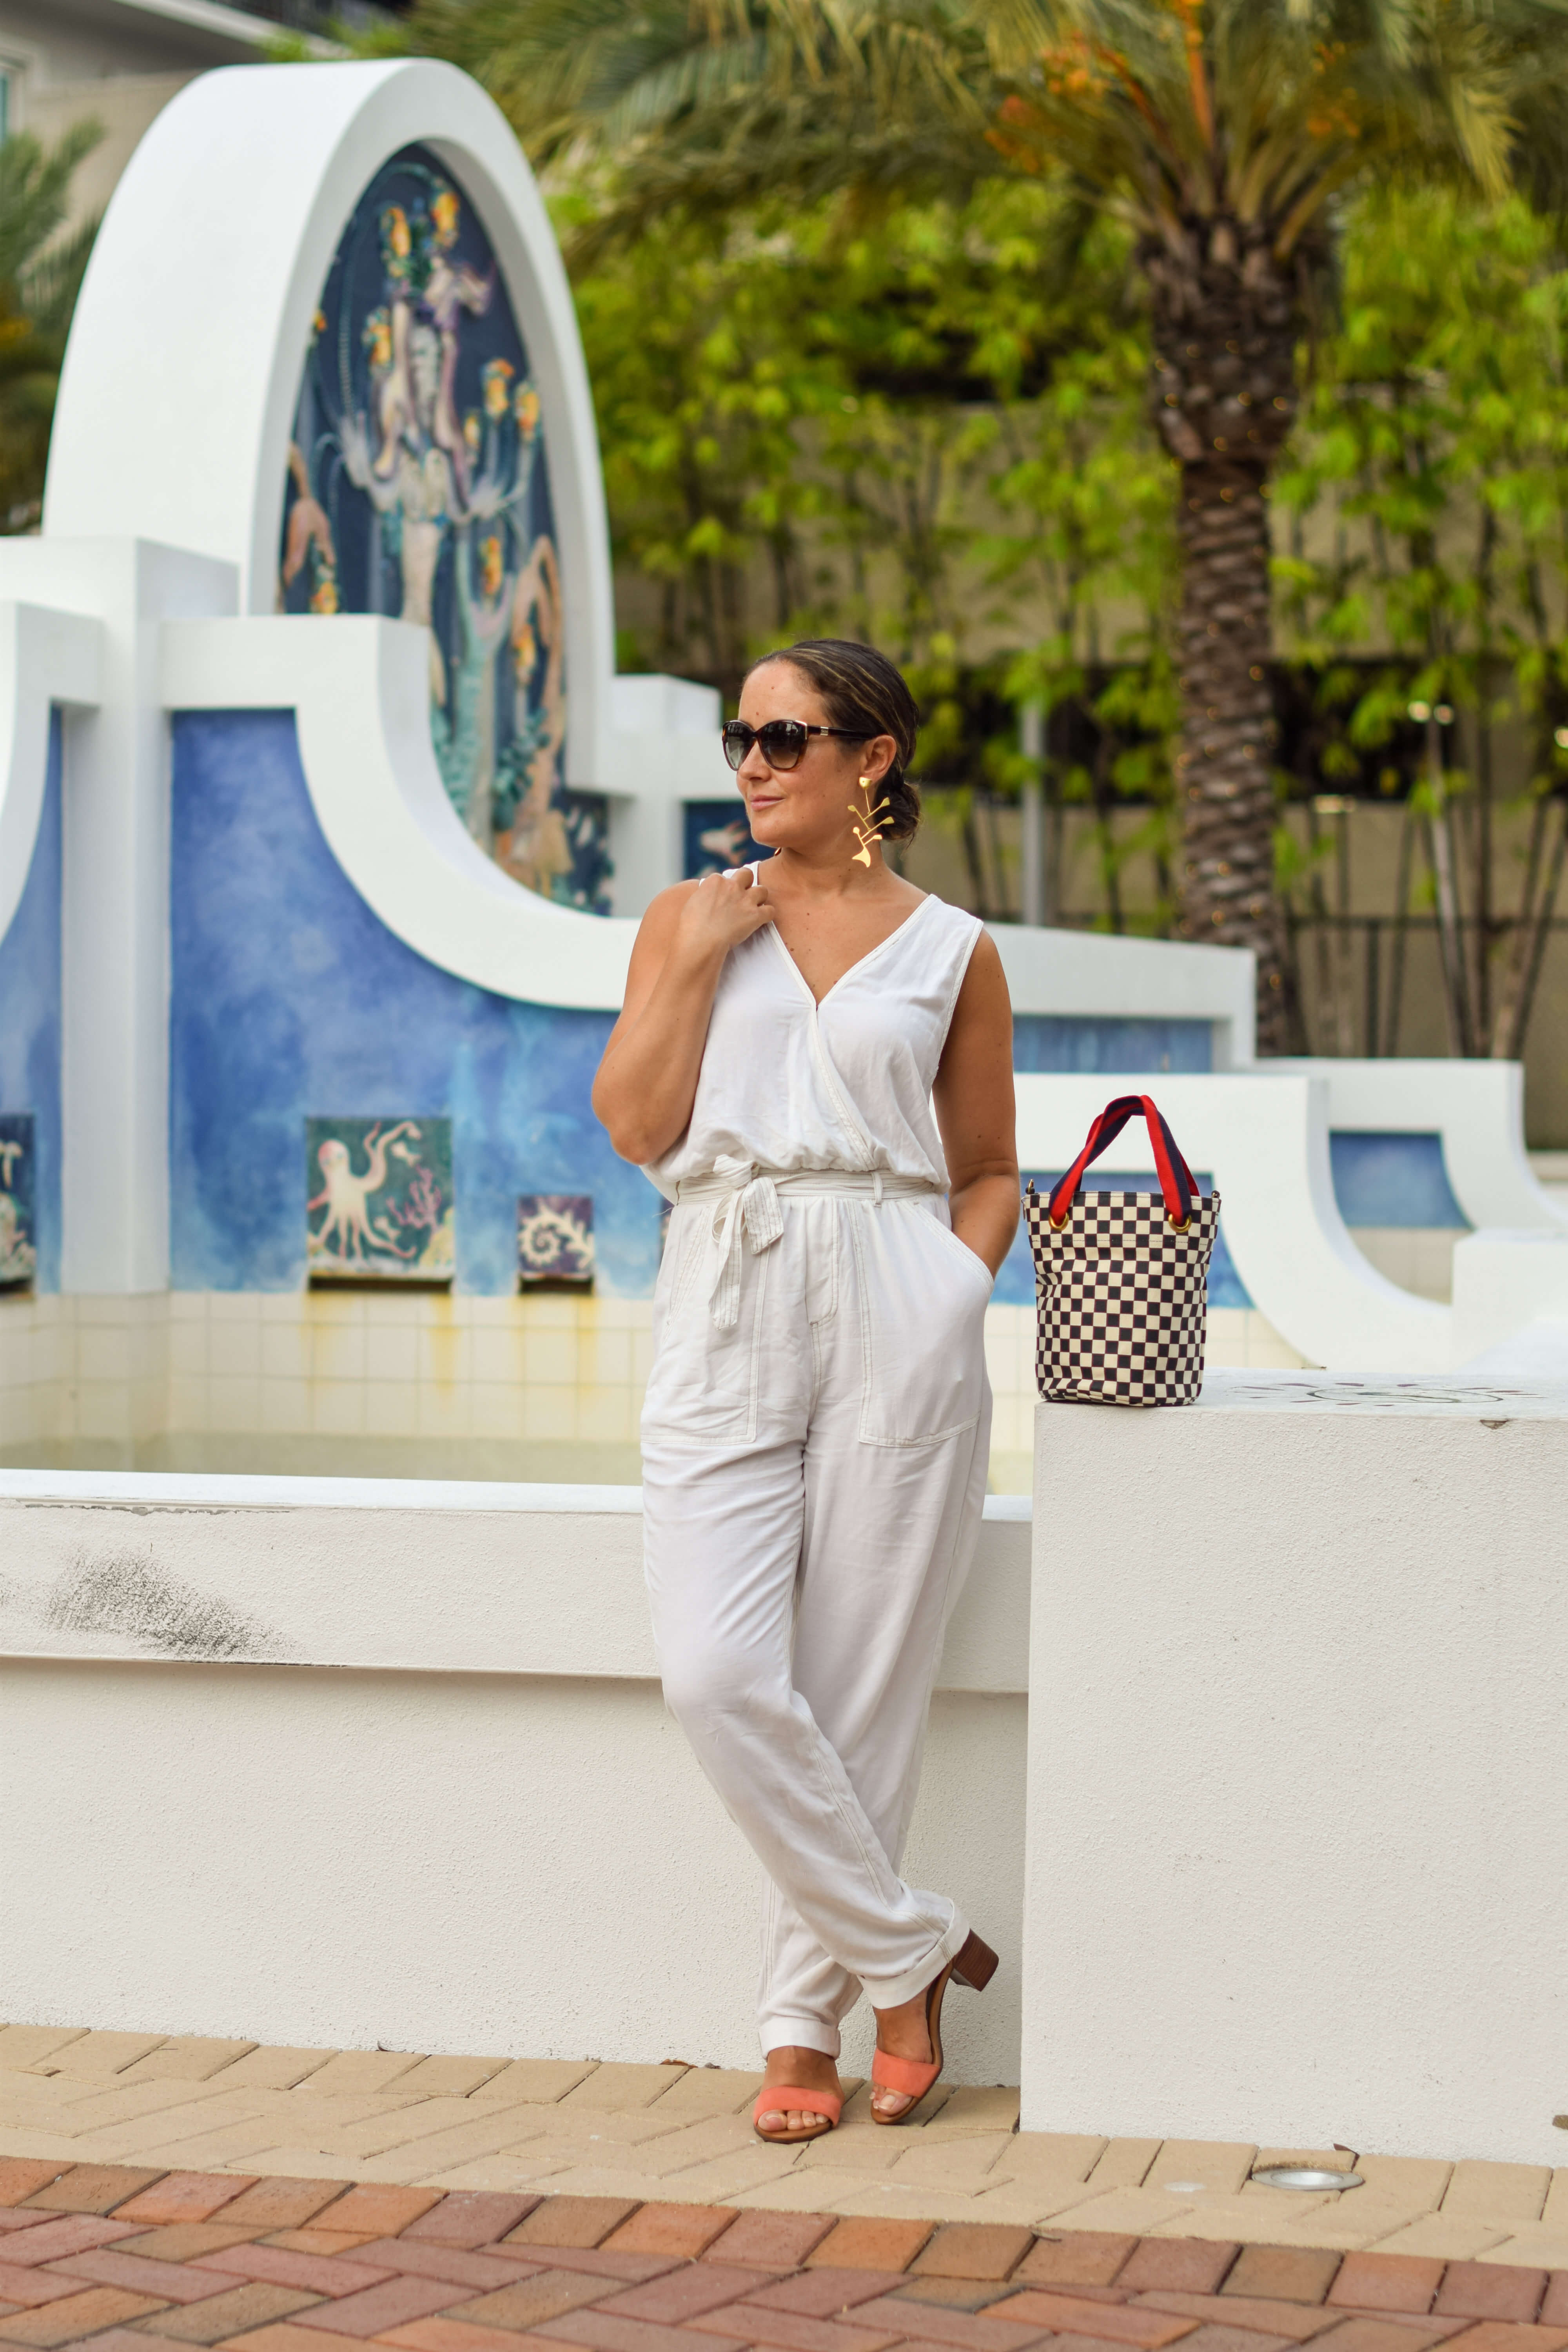 Splendid Jumpsuit Vionic Shoes Tory Burch Earrings Clare V Bag Outfit by Modnitsa Styling